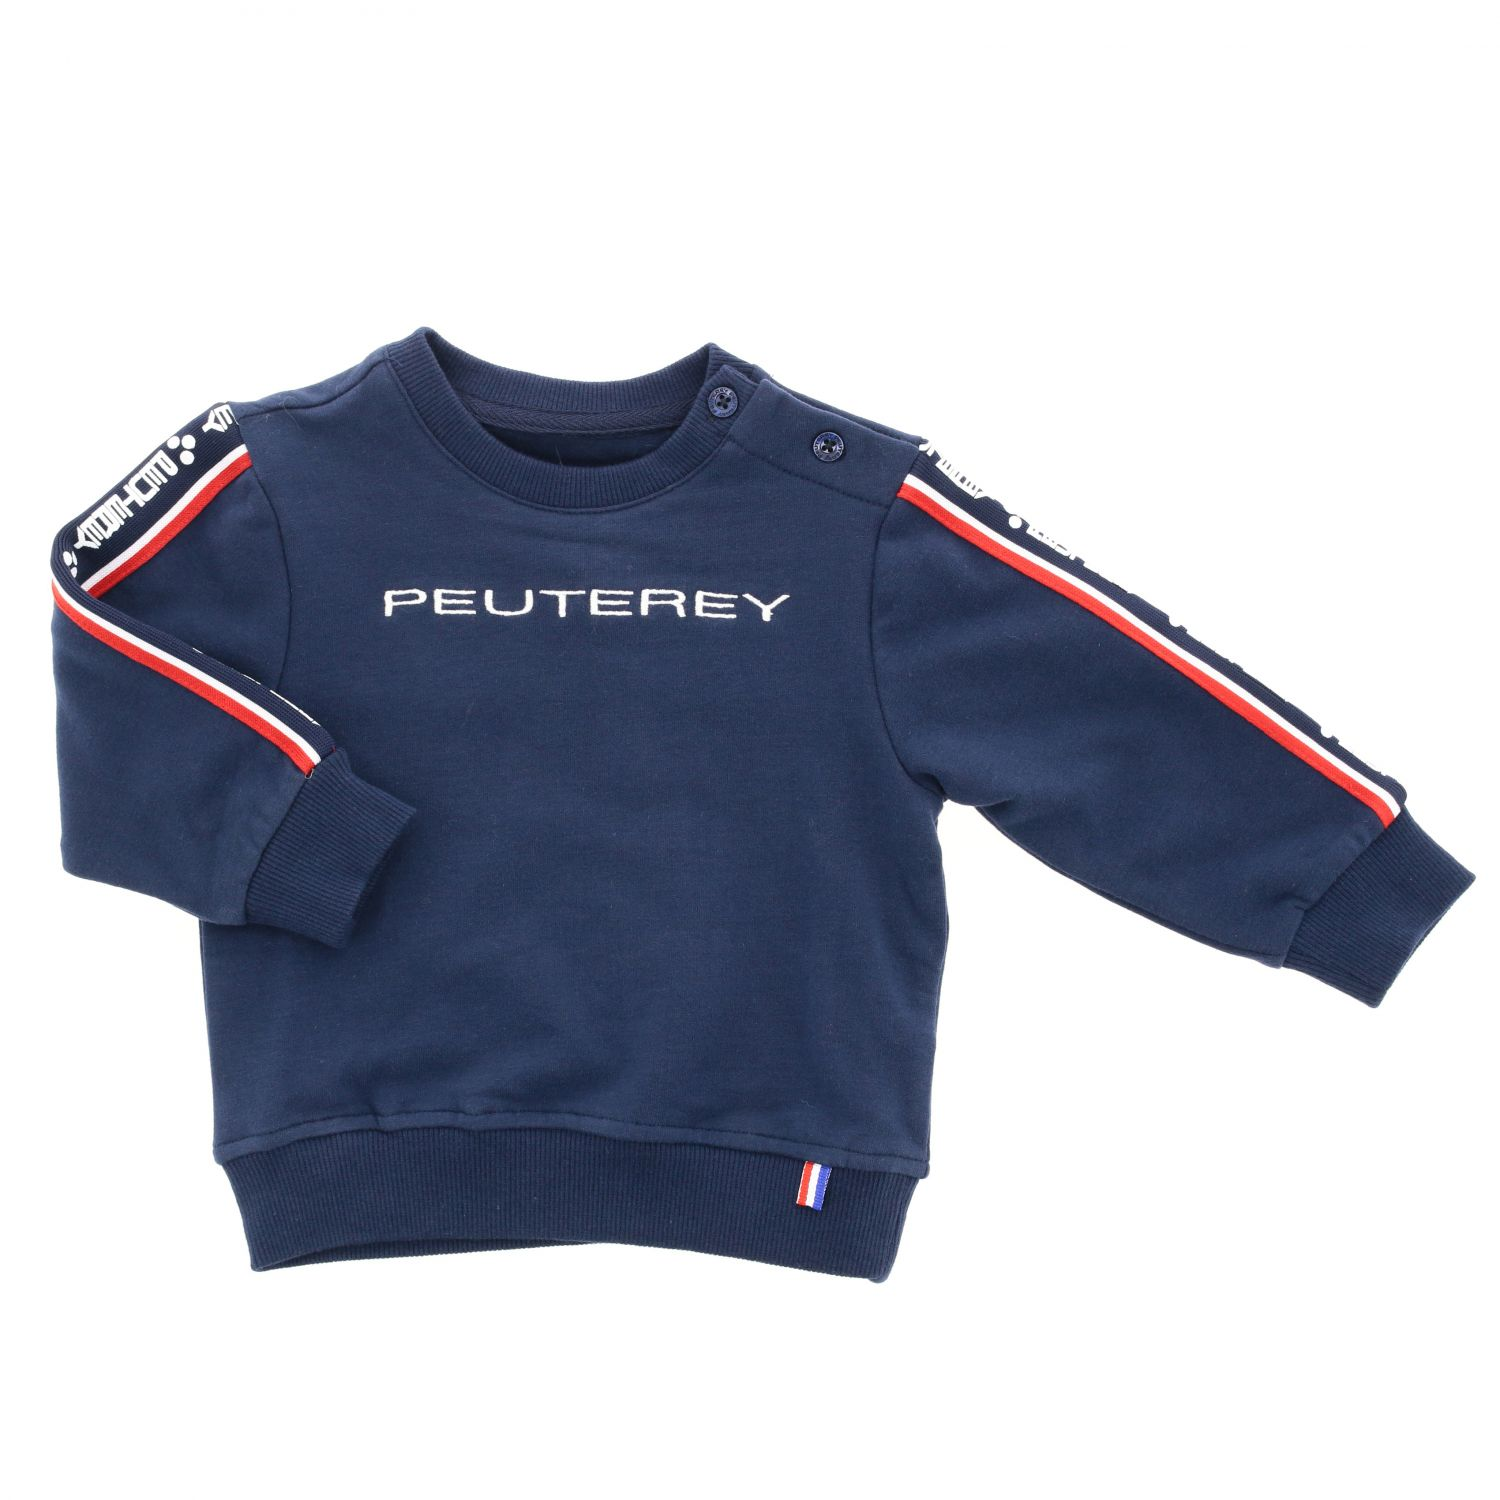 Pullover kinder Peuterey navy 1